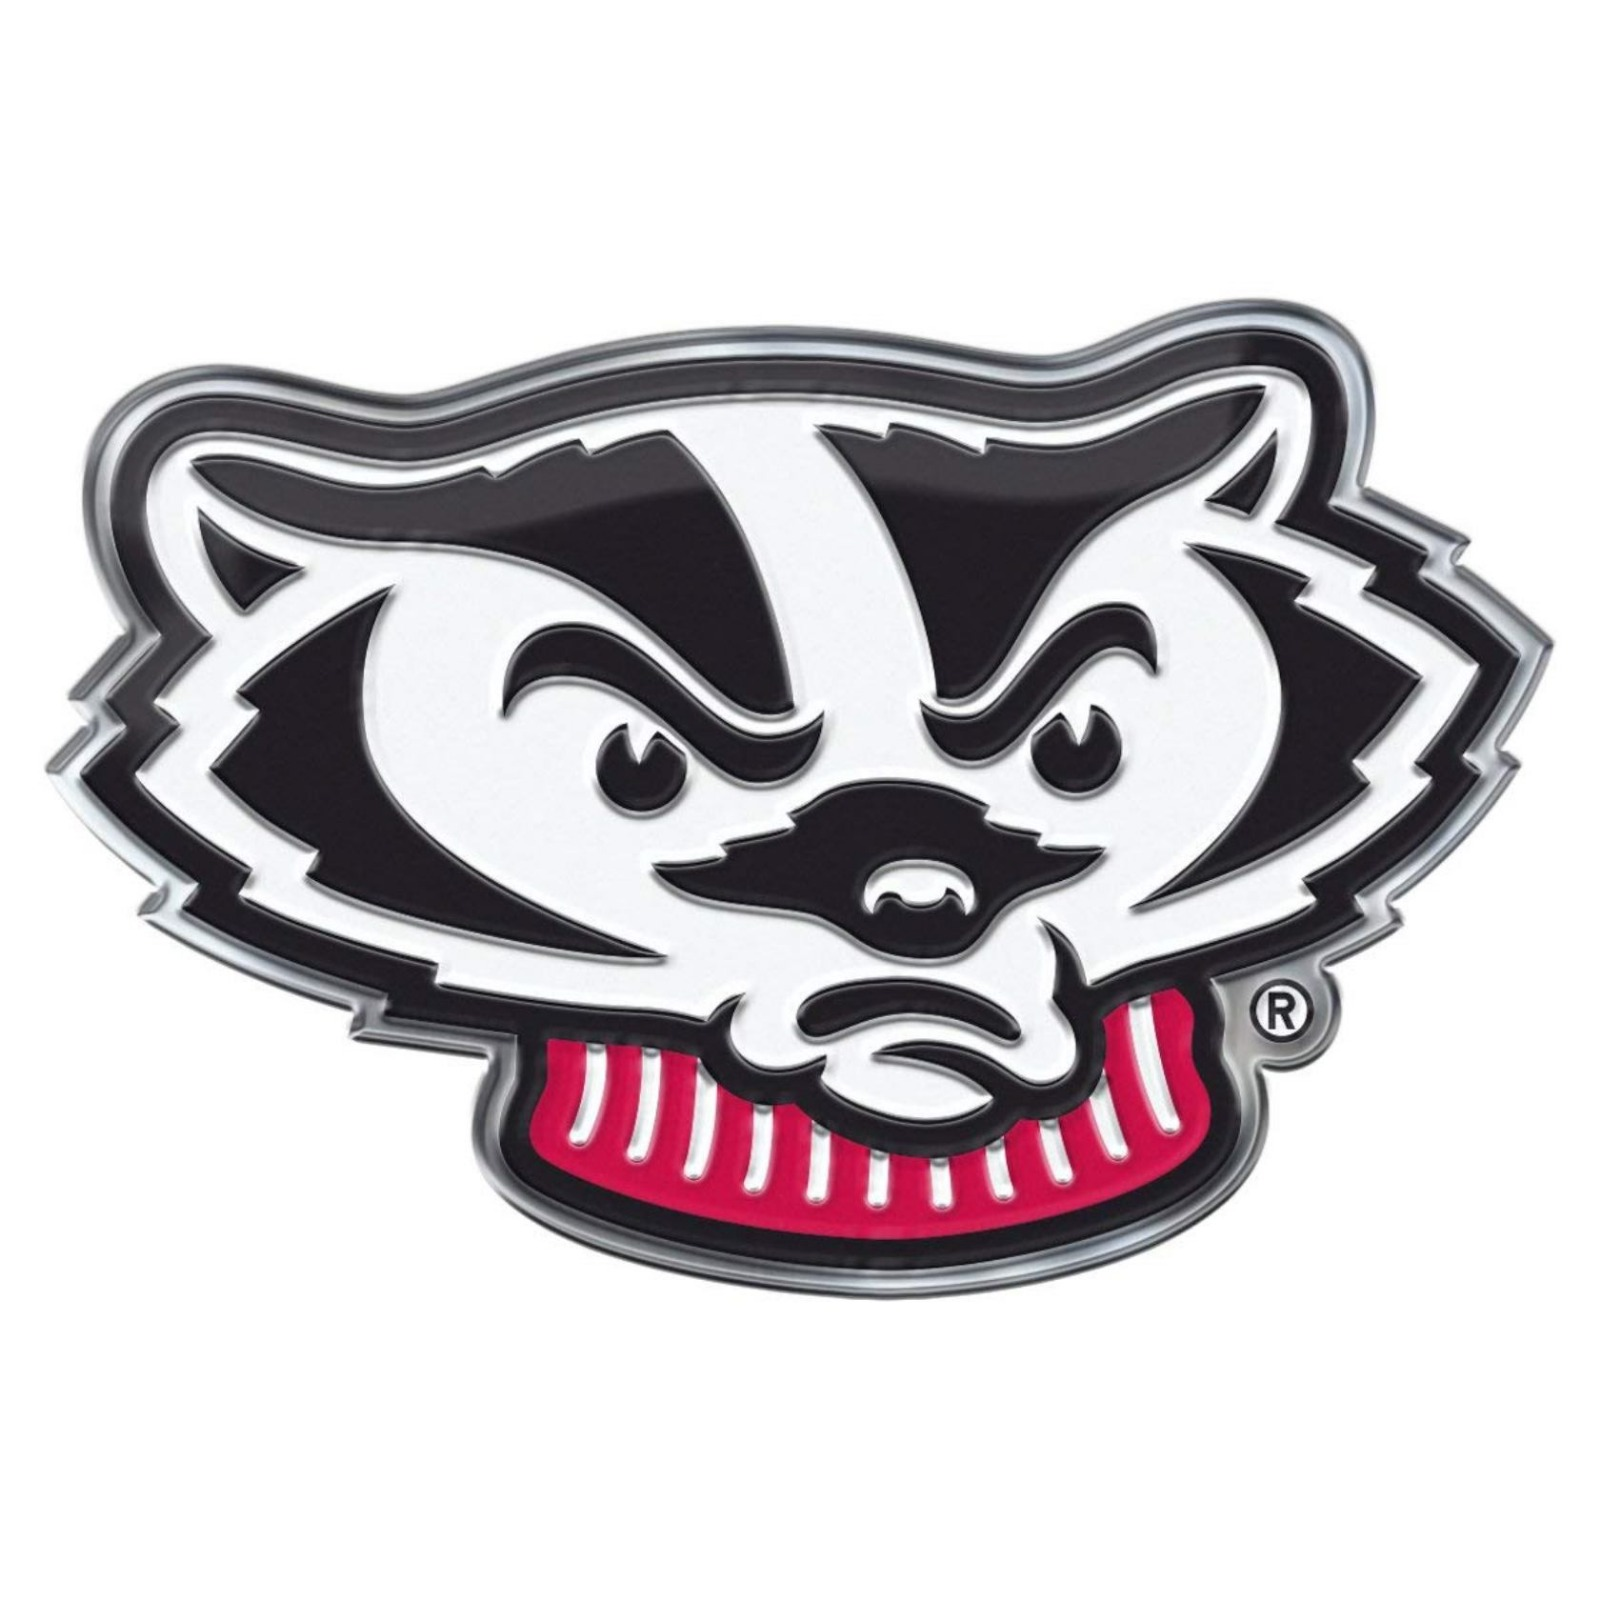 Wisconsin badgers ce4 alternative logo auto emblem chrome decal university of